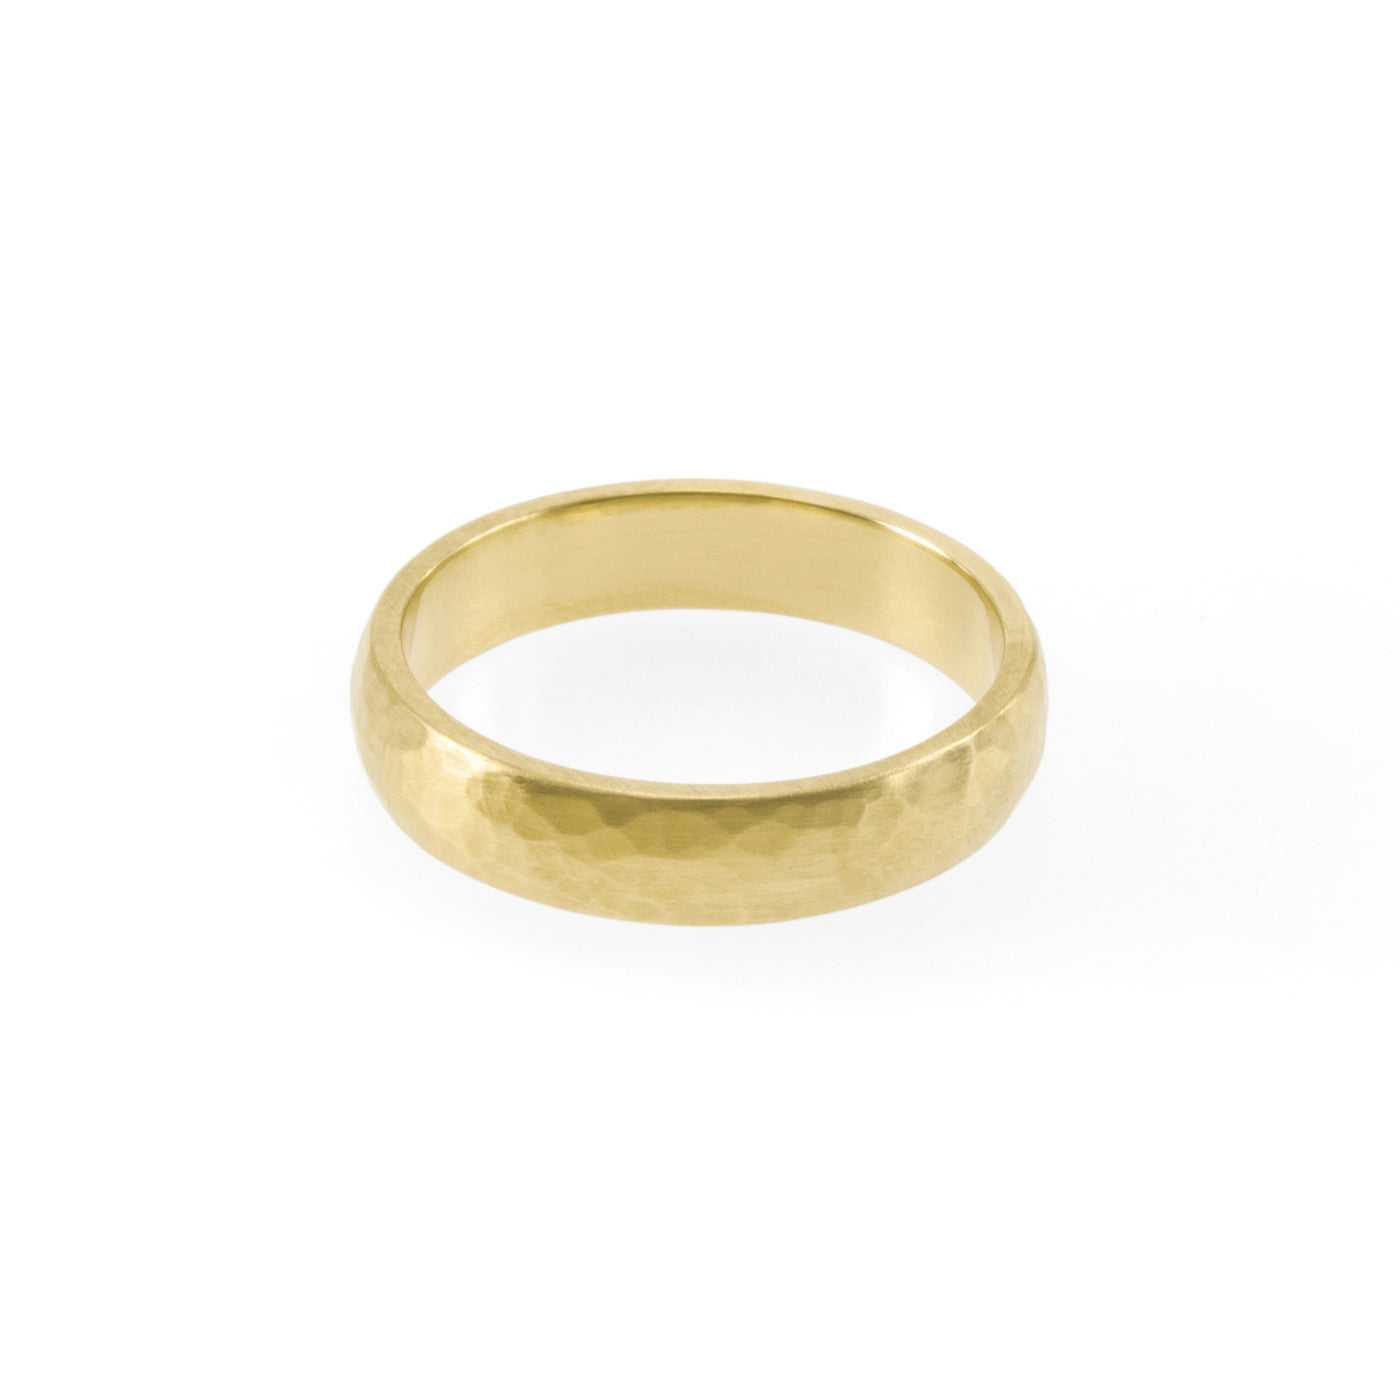 Eco-friendly gold ring. This sustainable Hammered Band is handmade in Cape Town in recycled gold from e-waste.